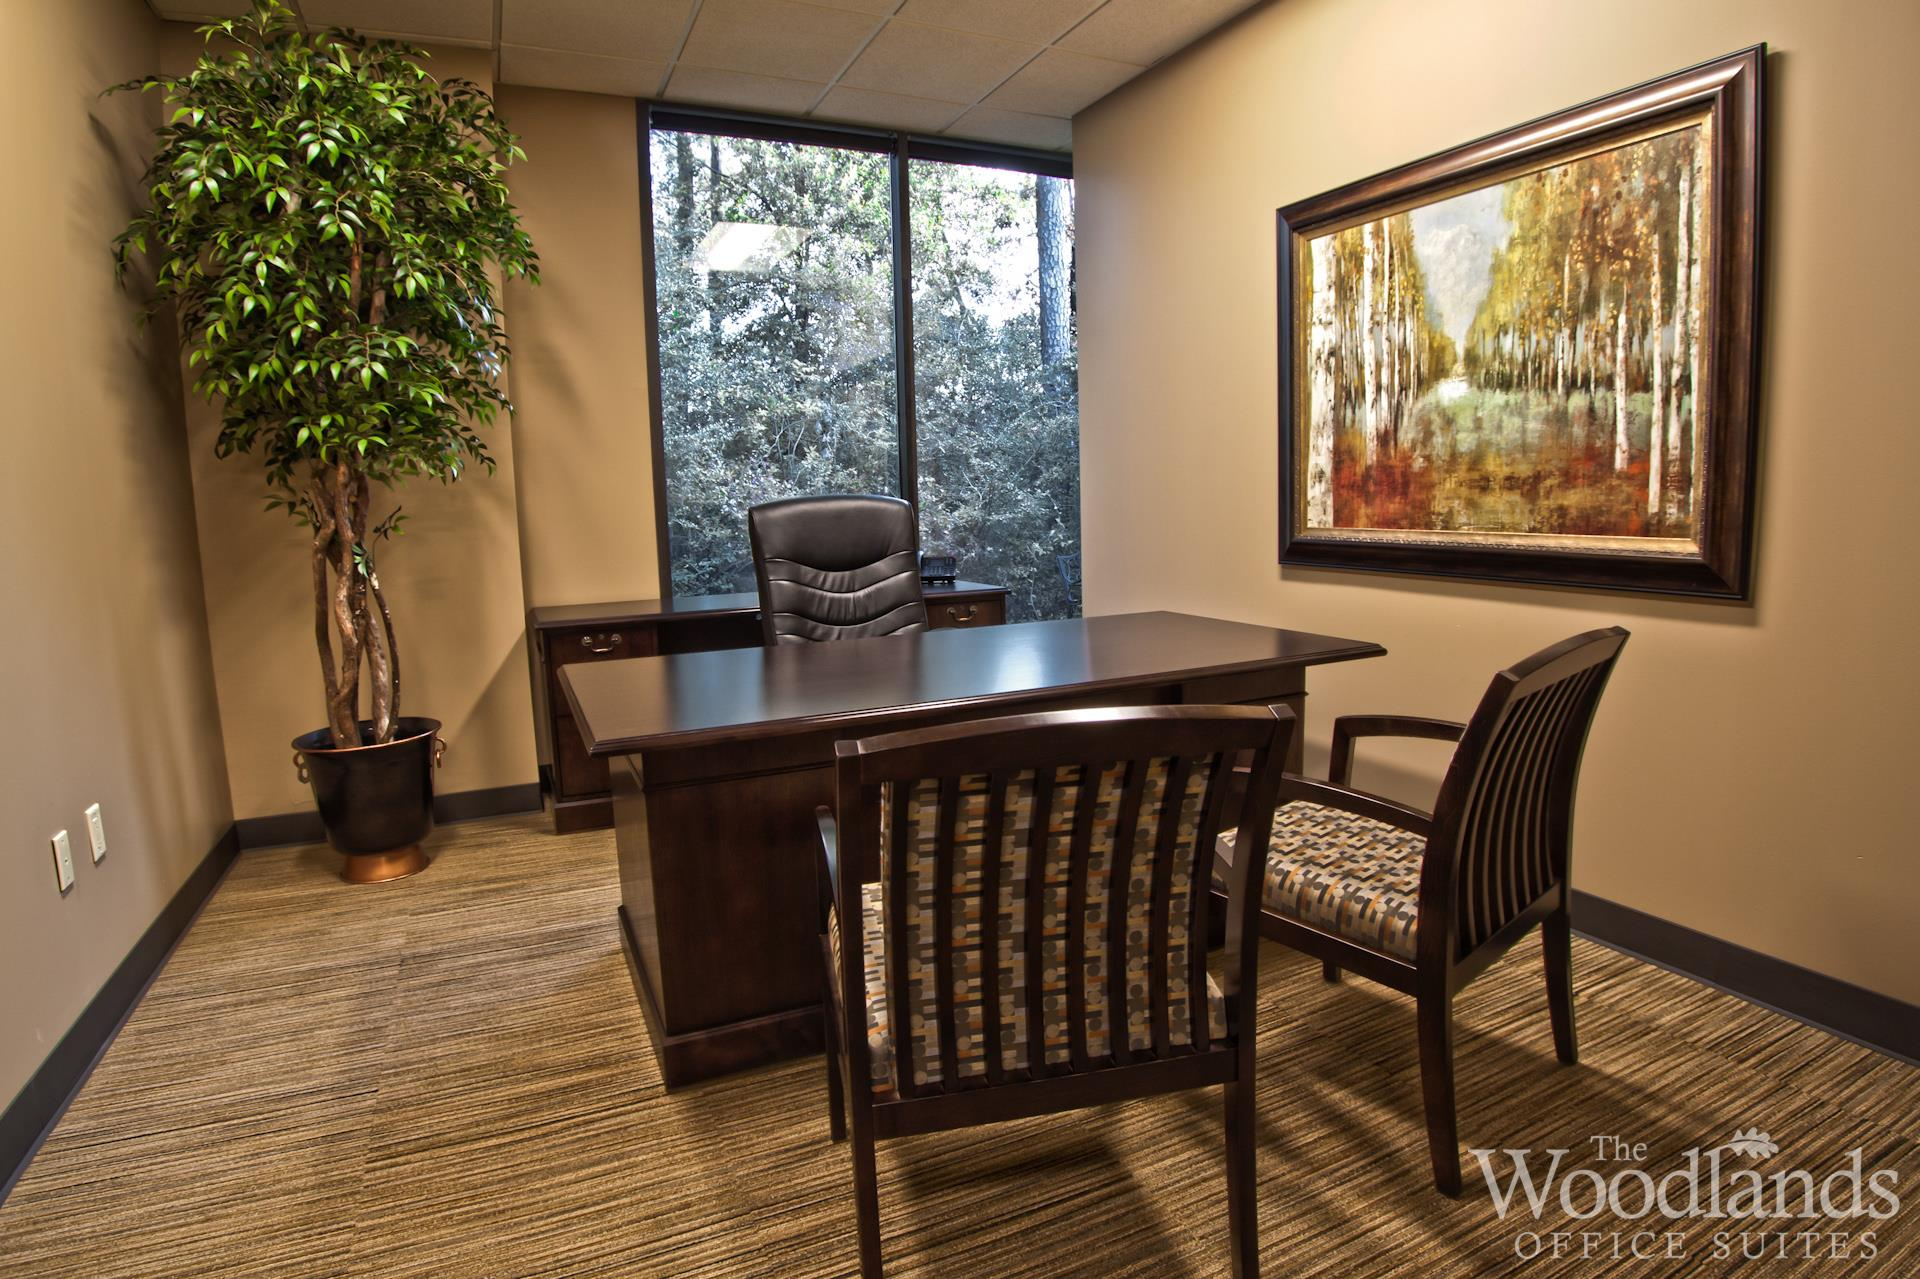 The Woodlands Office Suites - Suite #220 - Large Window Office